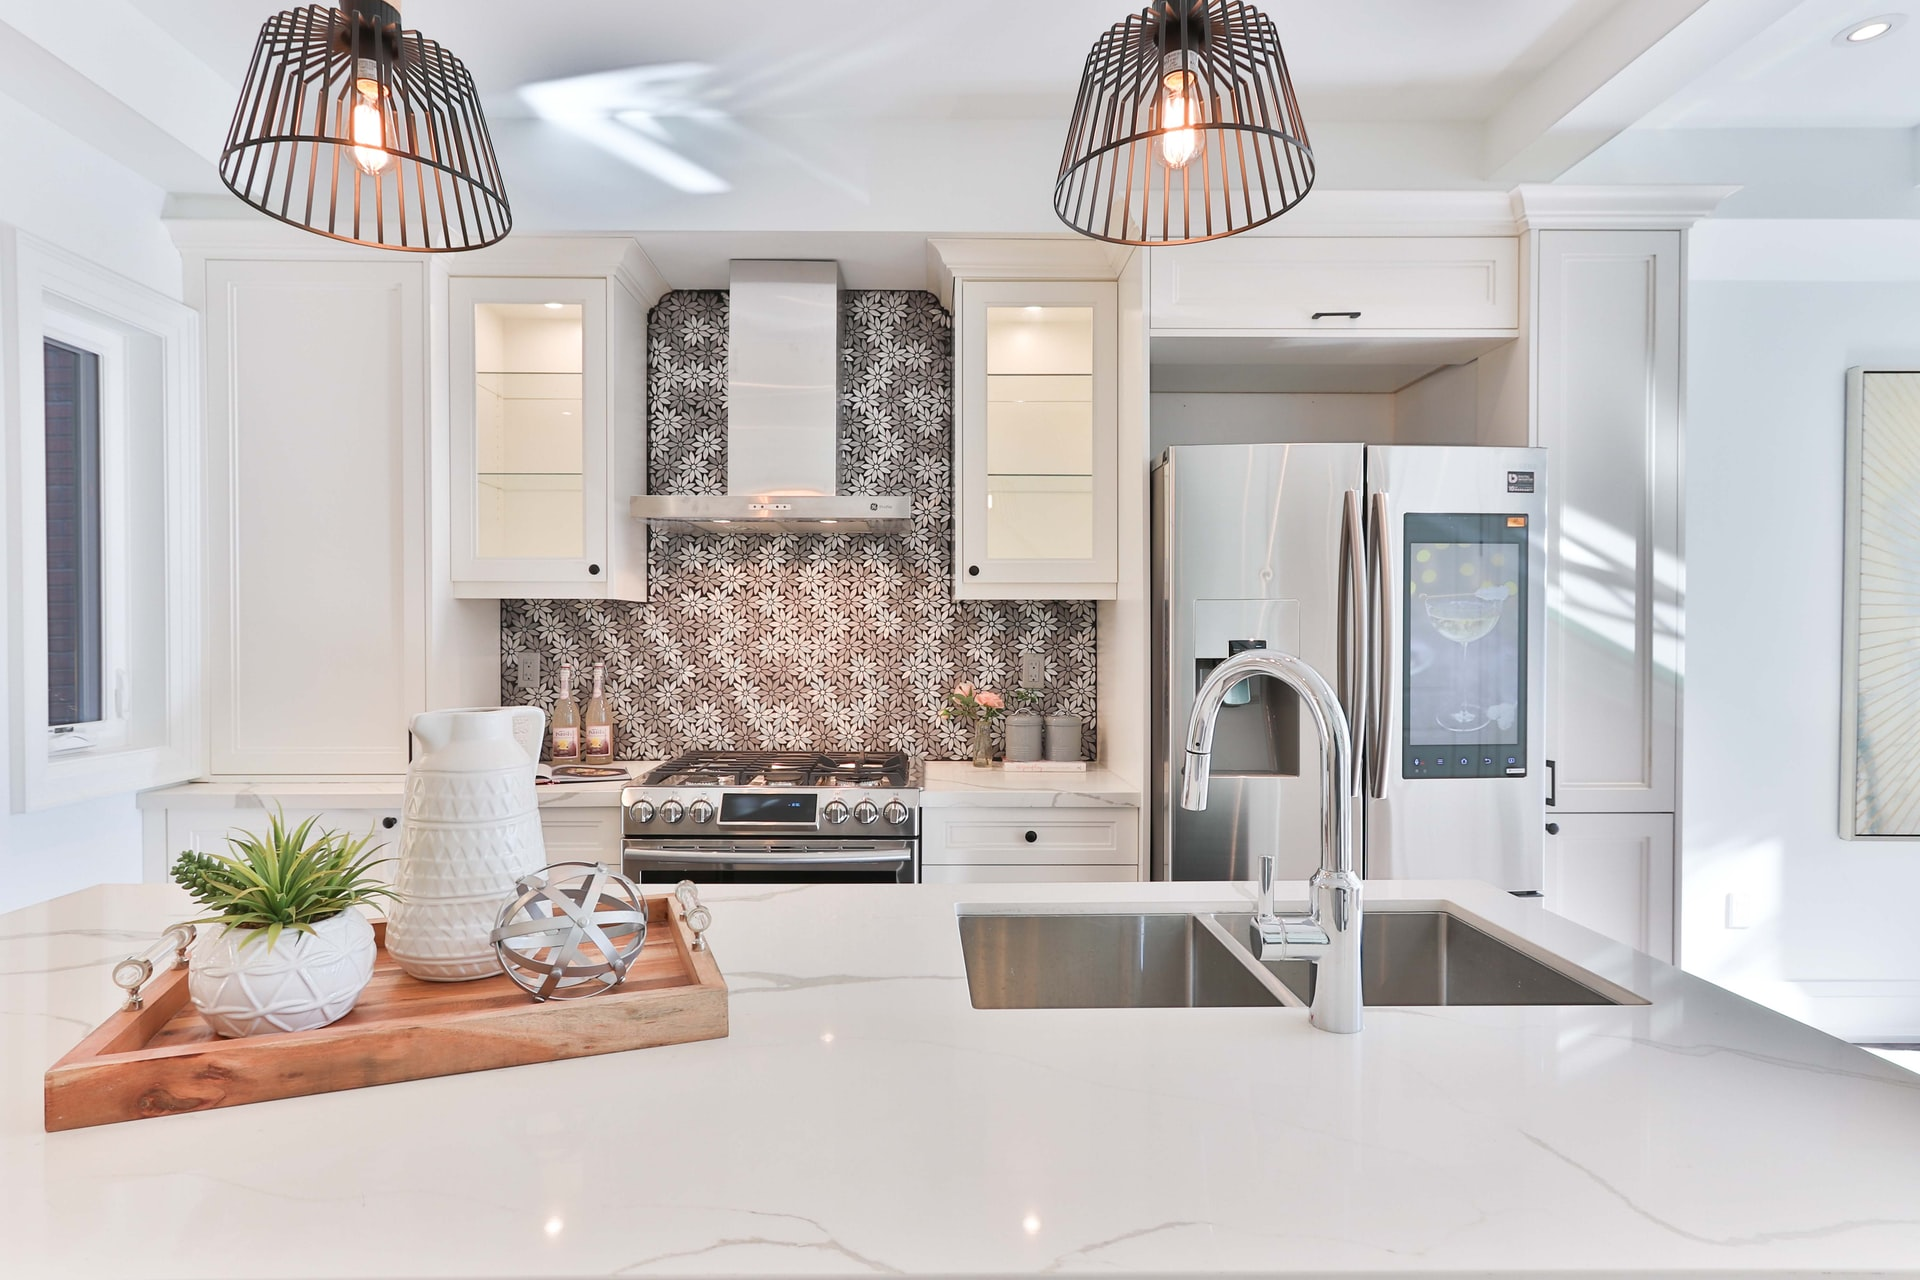 A remodeled kitchen, fully decorated